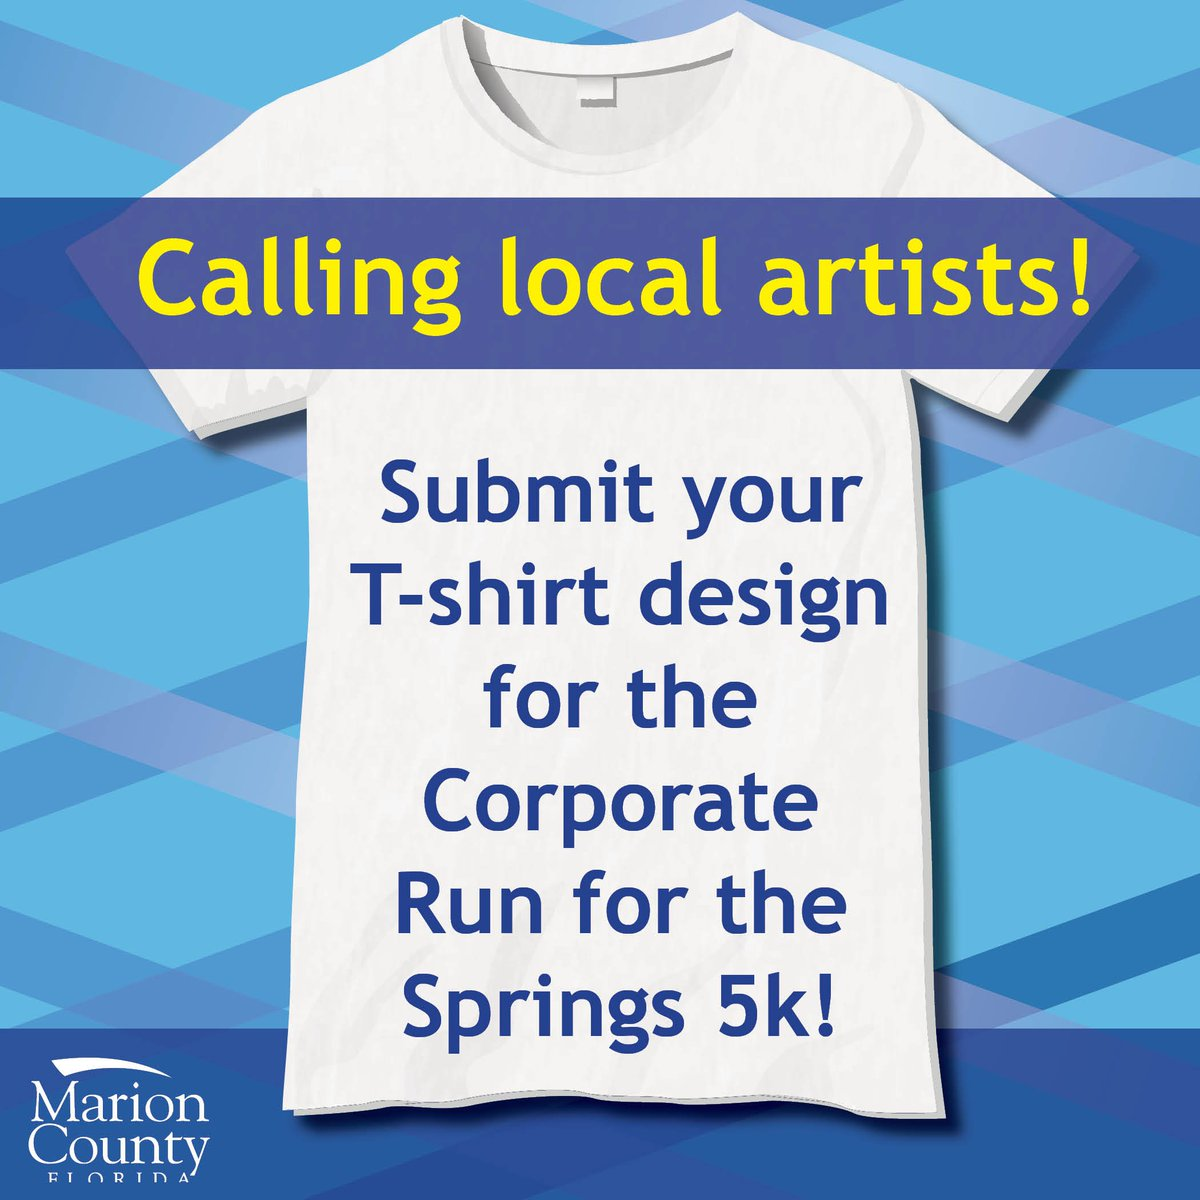 Marion County On Twitter Wanted T Shirt Designs For The Official